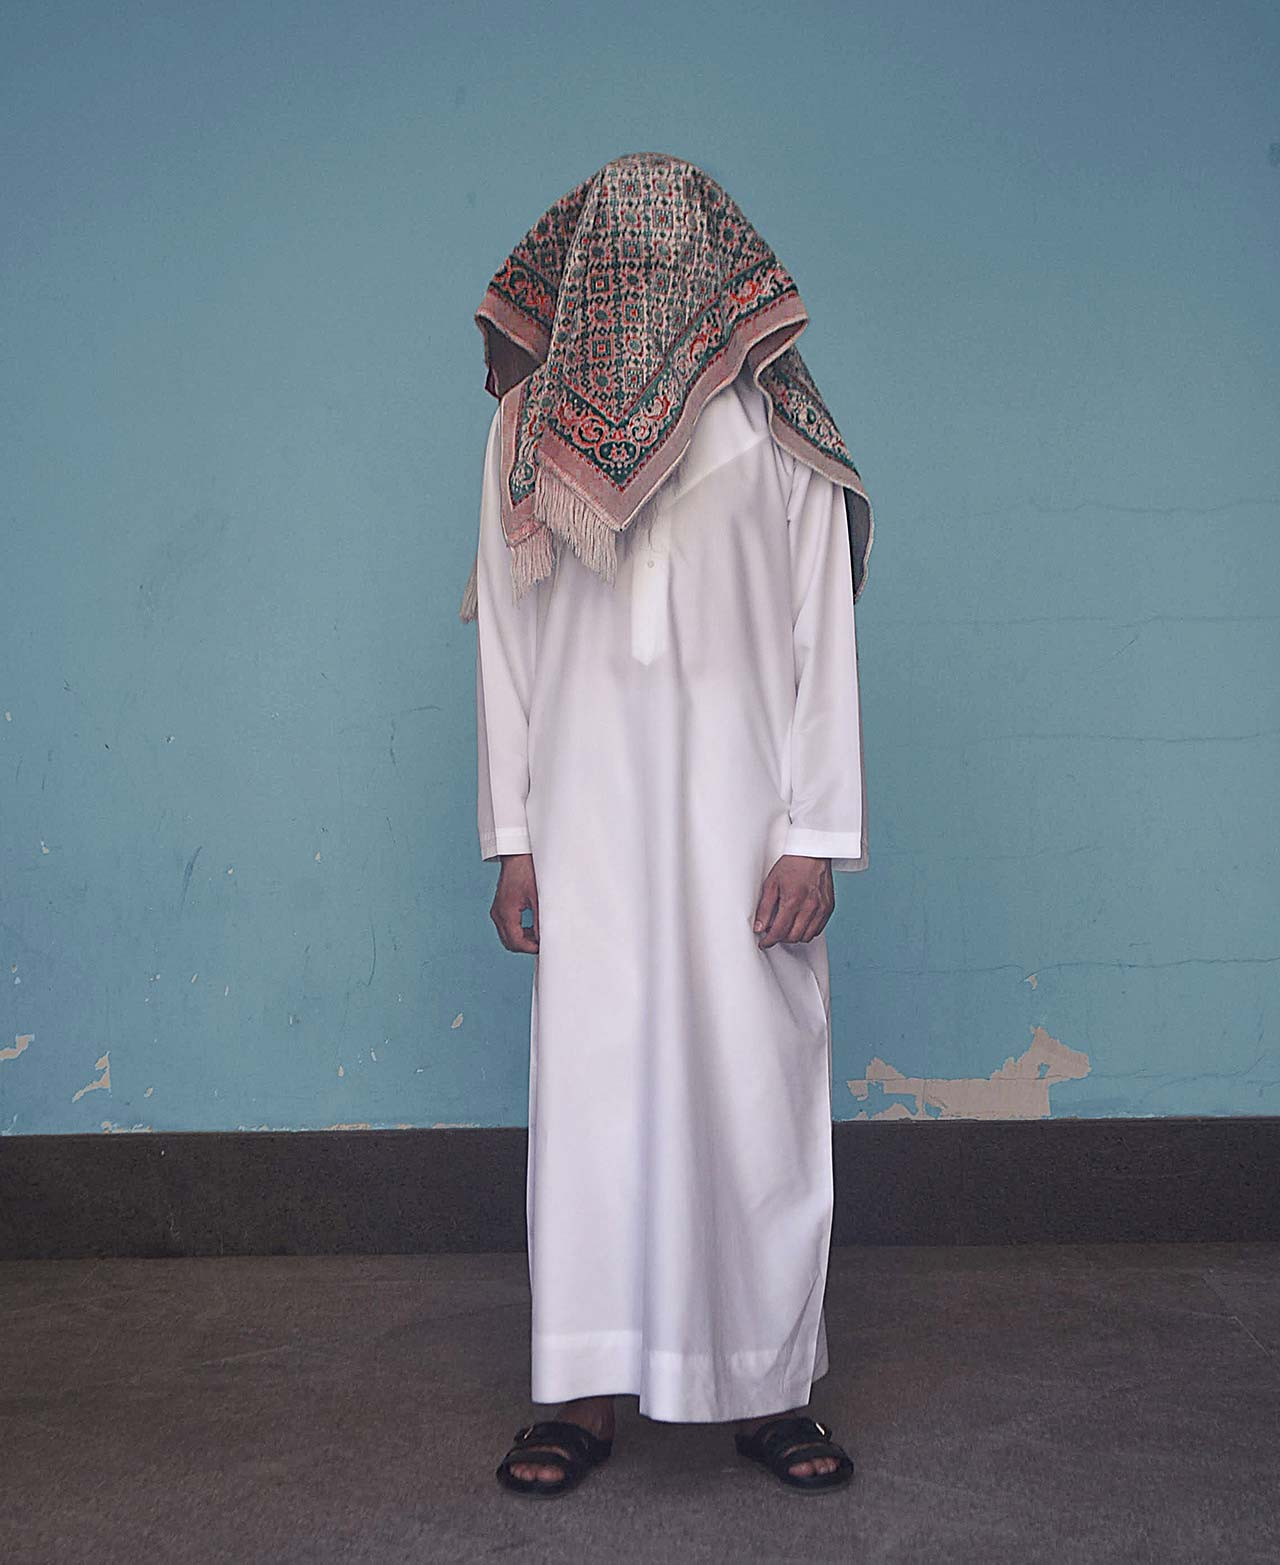 "Ali Cha'aban, The Confused Arab II from ""RUGLIFE"" series, 2016. Photo paper encased in plexiglass, 160cm x 130cm, Edition 1/5. Courtesy of Ali Cha'aban."